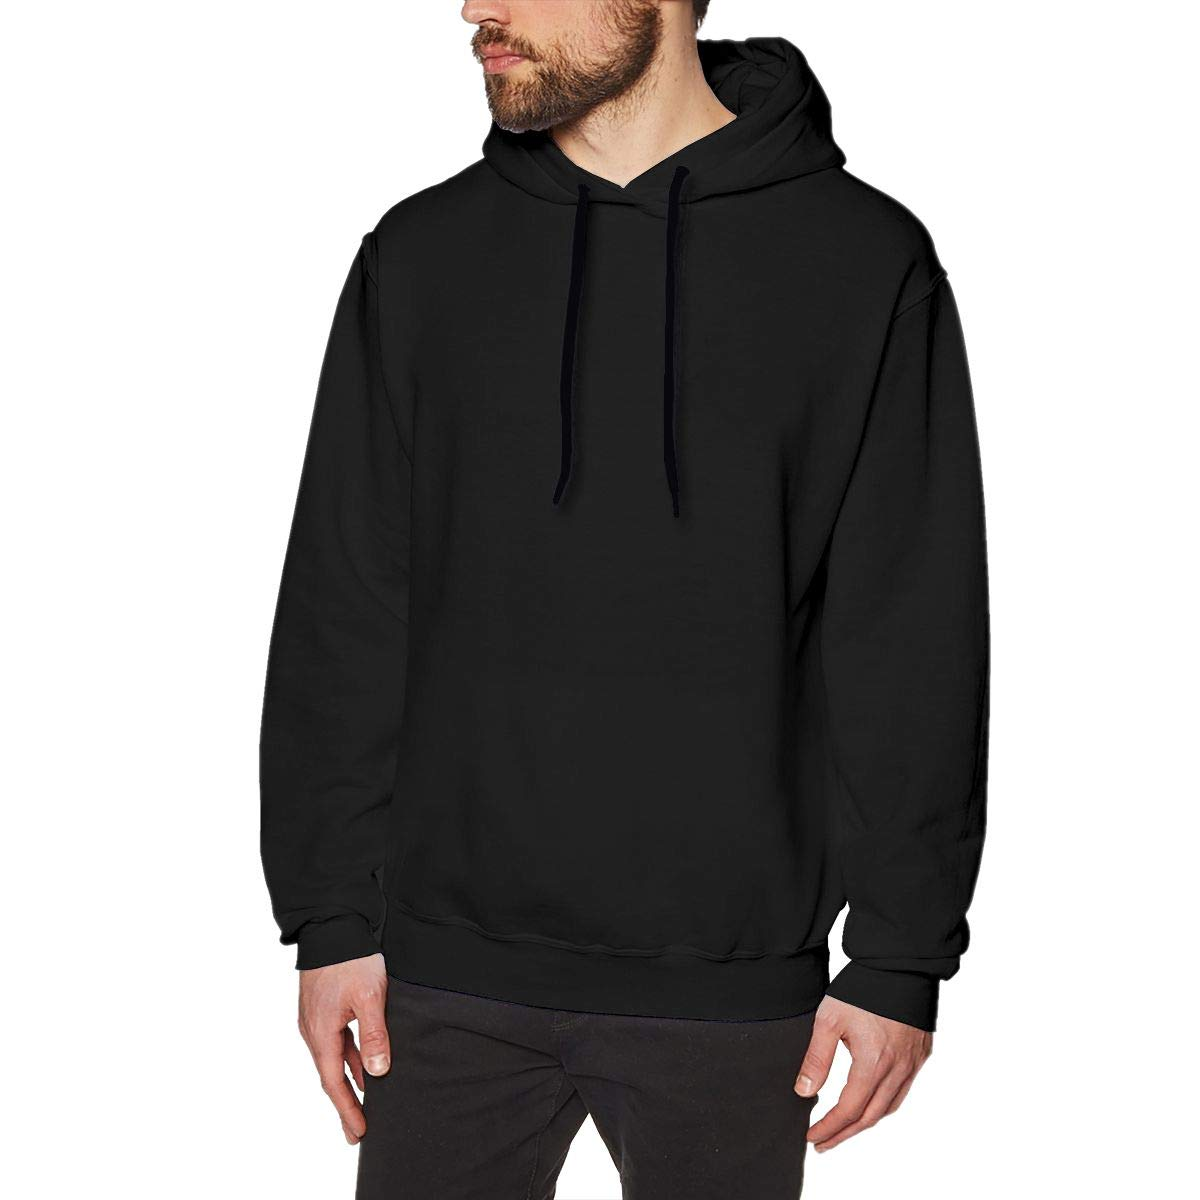 Men's NF Rapper Logo-Black Logo Hoodie Custom Pullover Sweatshirt Long Sleeve Hoodies Hooded for Youth Boys Men Black S by Cxcai